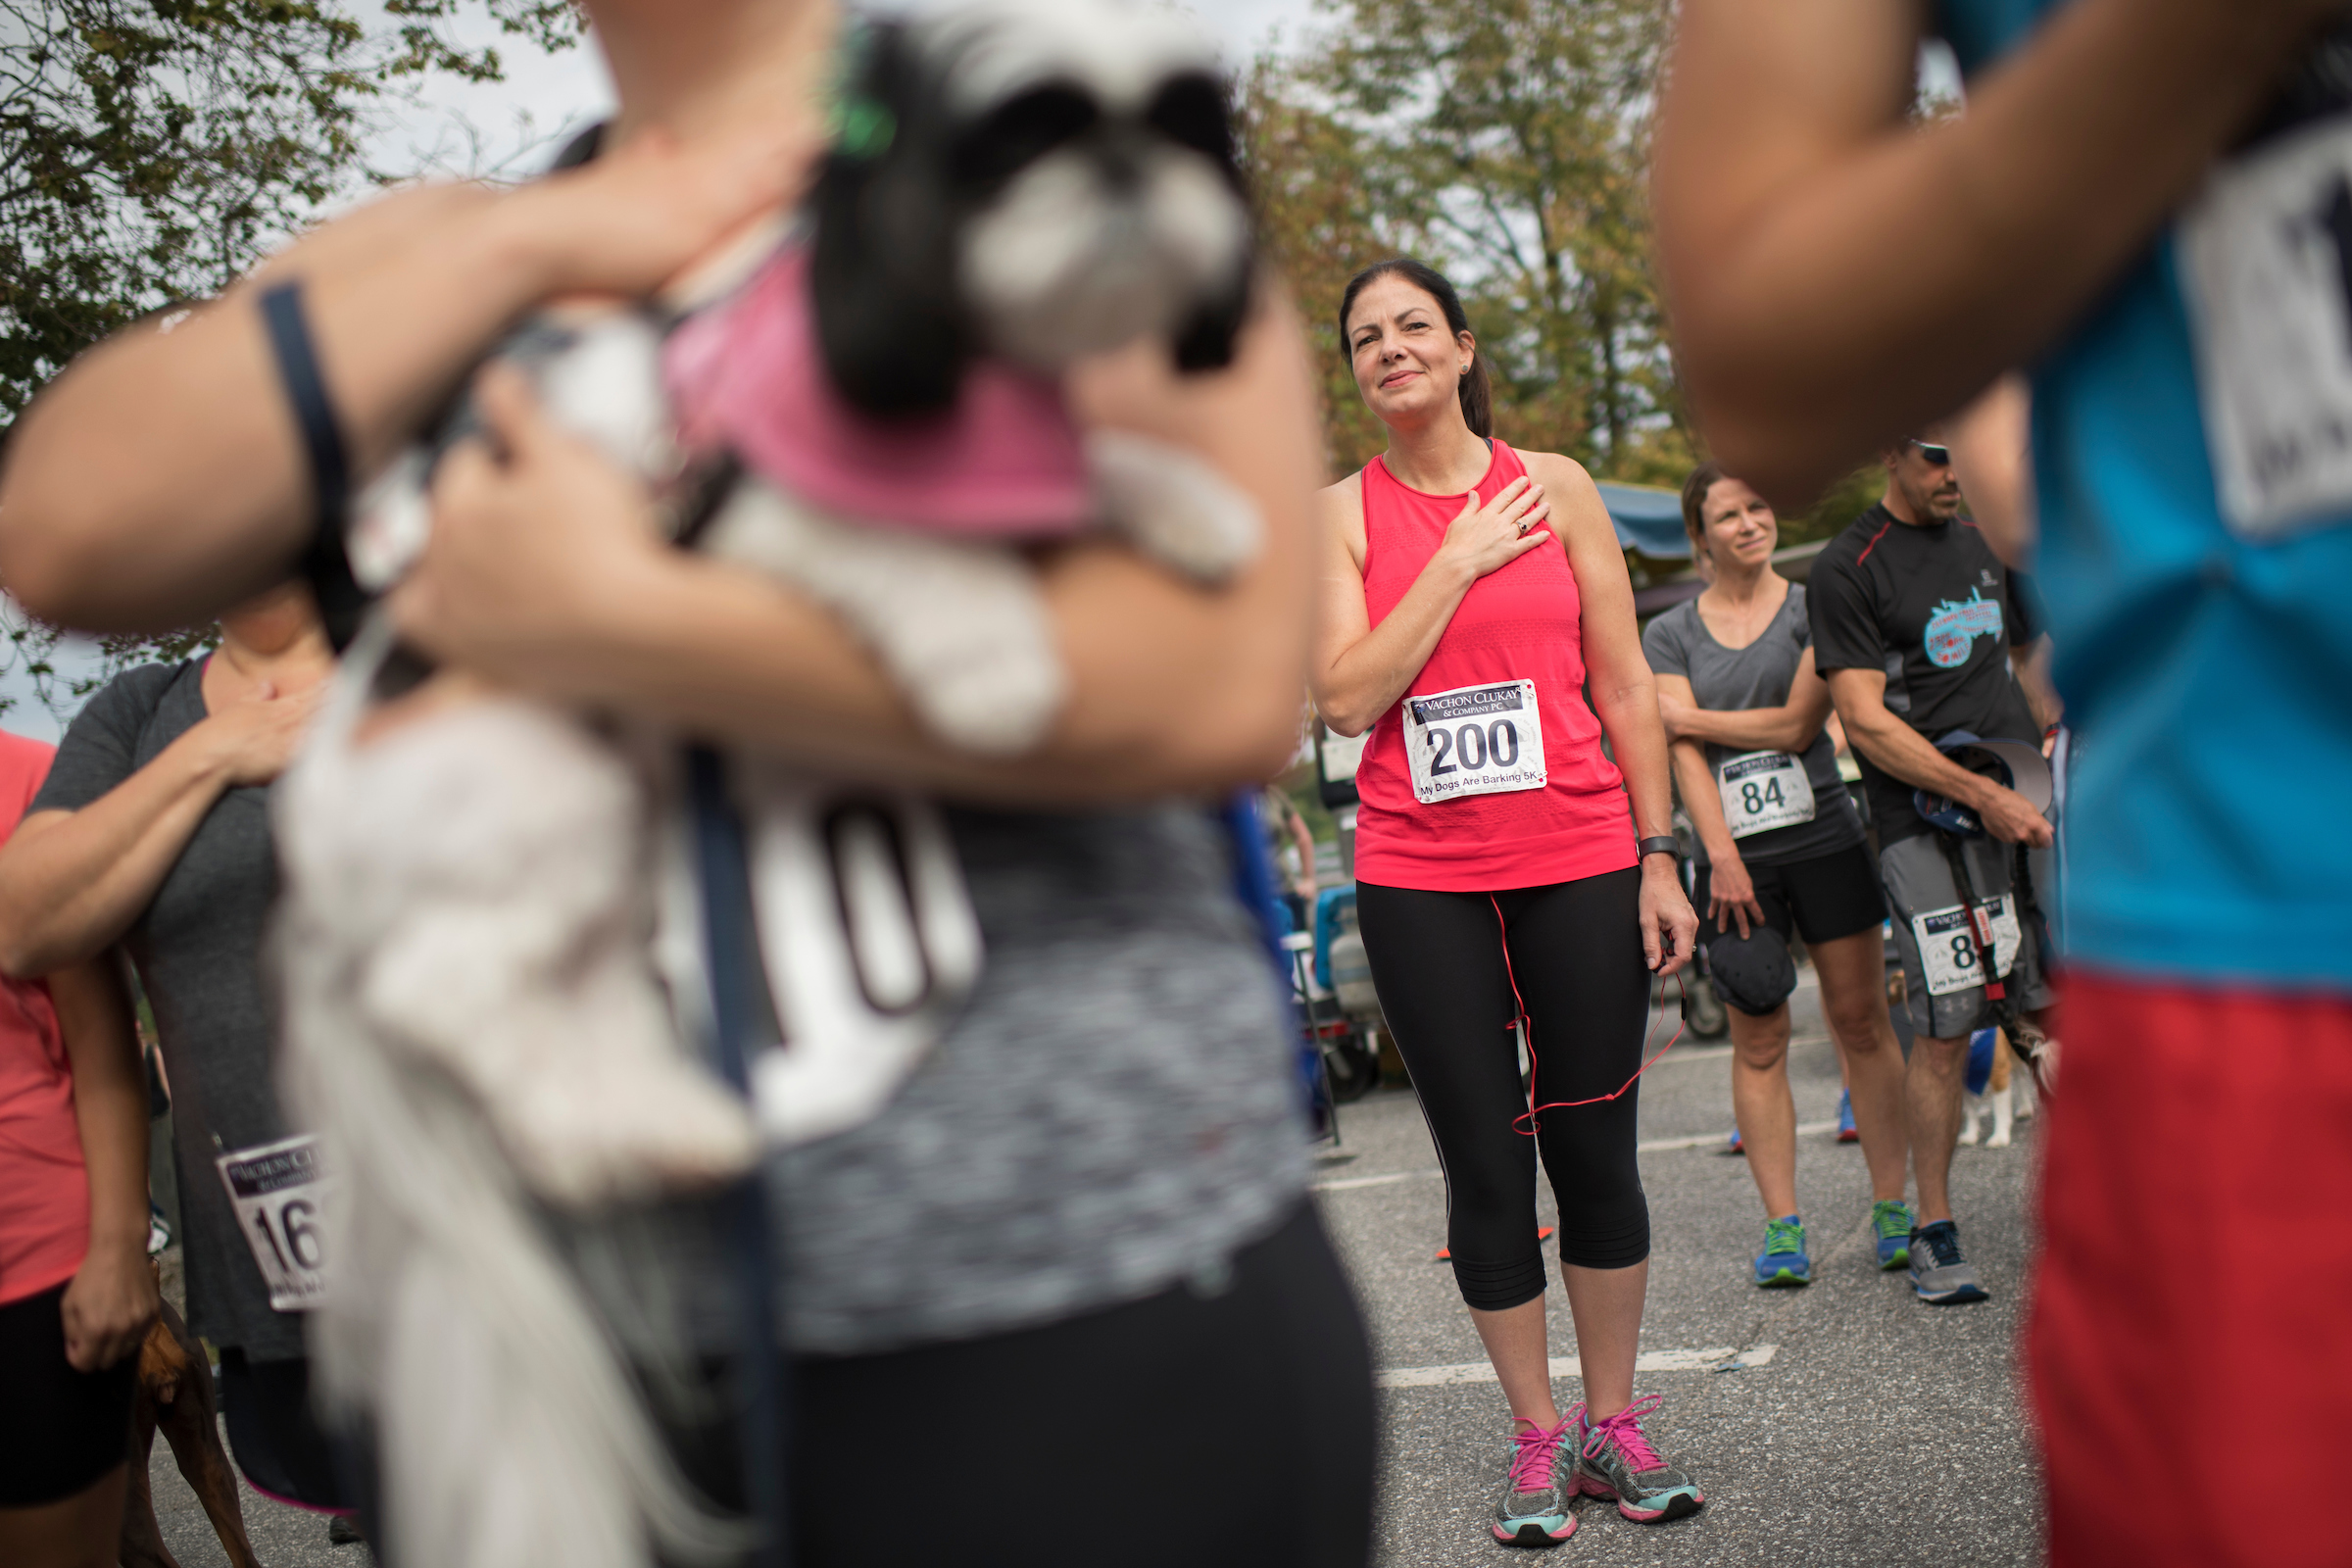 Ayotte runs a 5K almost every weekend she's home. Here she listens to the National Anthem before the My Dogs are Barking 5K race in Manchester. (Tom Williams/CQ Roll Call)